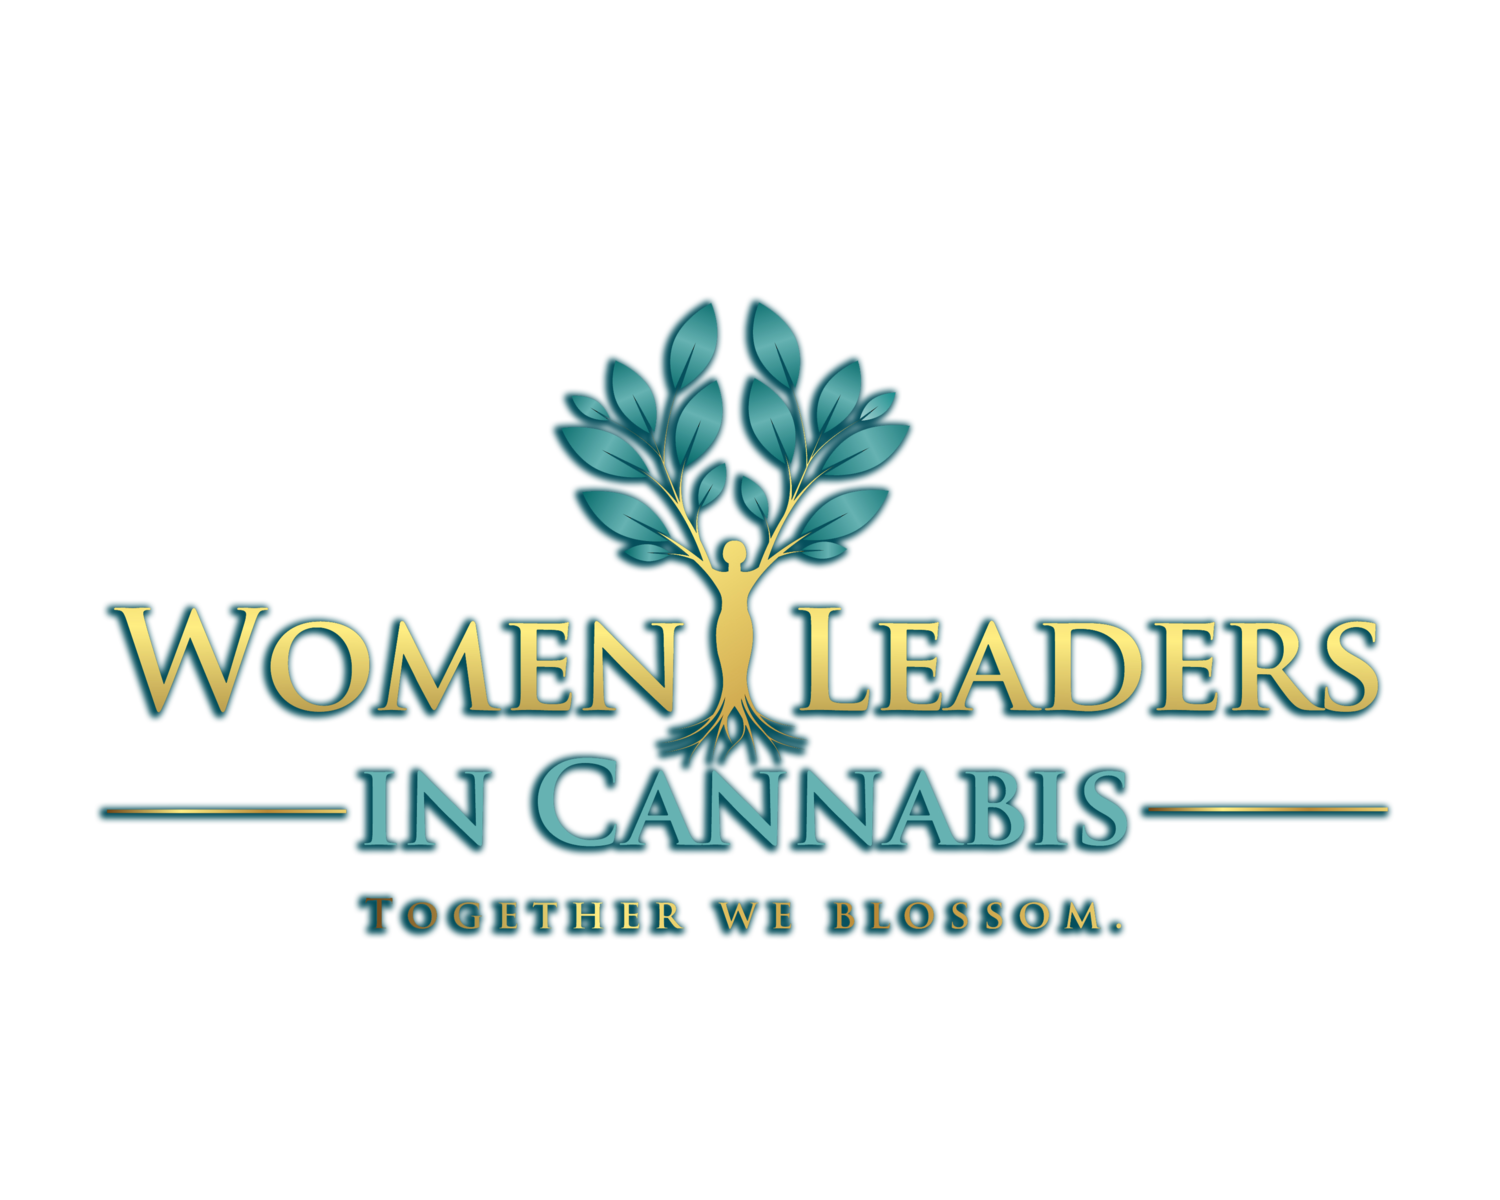 Women Leaders in Cannabis